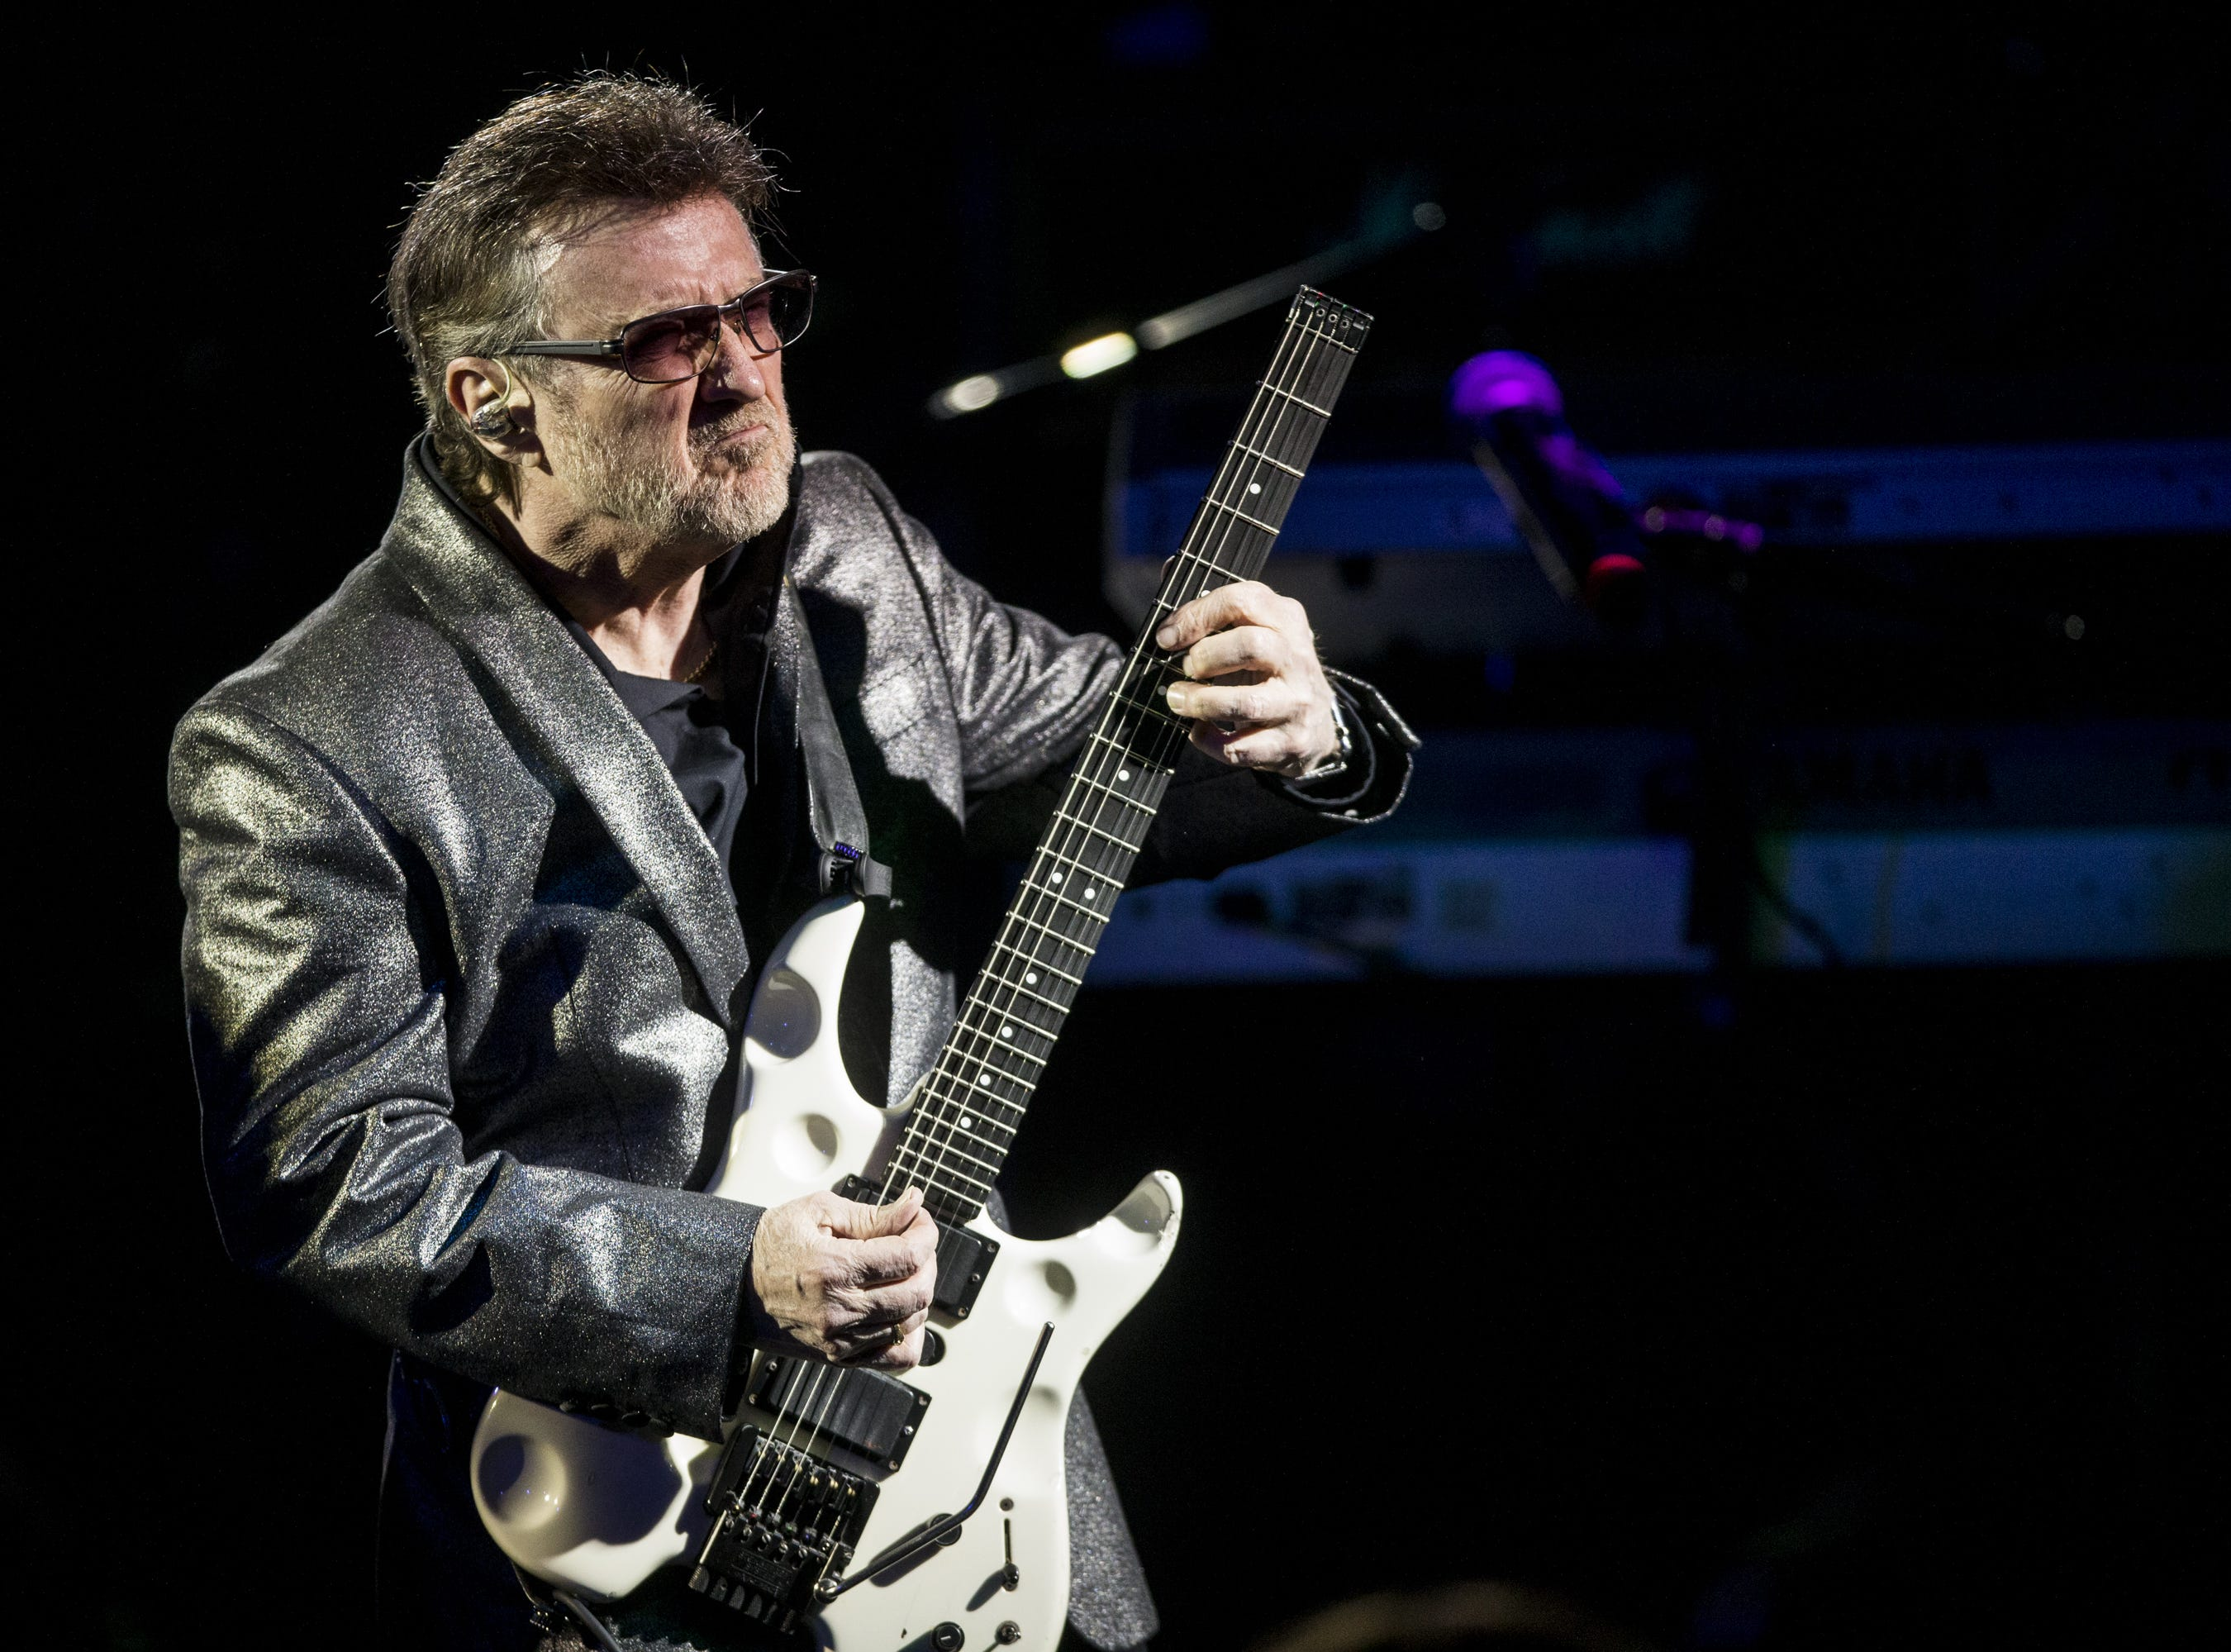 Buck Dharma of Blue Oyster Cult performs during the 17th annual Alice Cooper's Christmas Pudding concert on Saturday, Dec. 8, 2018, at Celebrity Theatre in Phoenix.